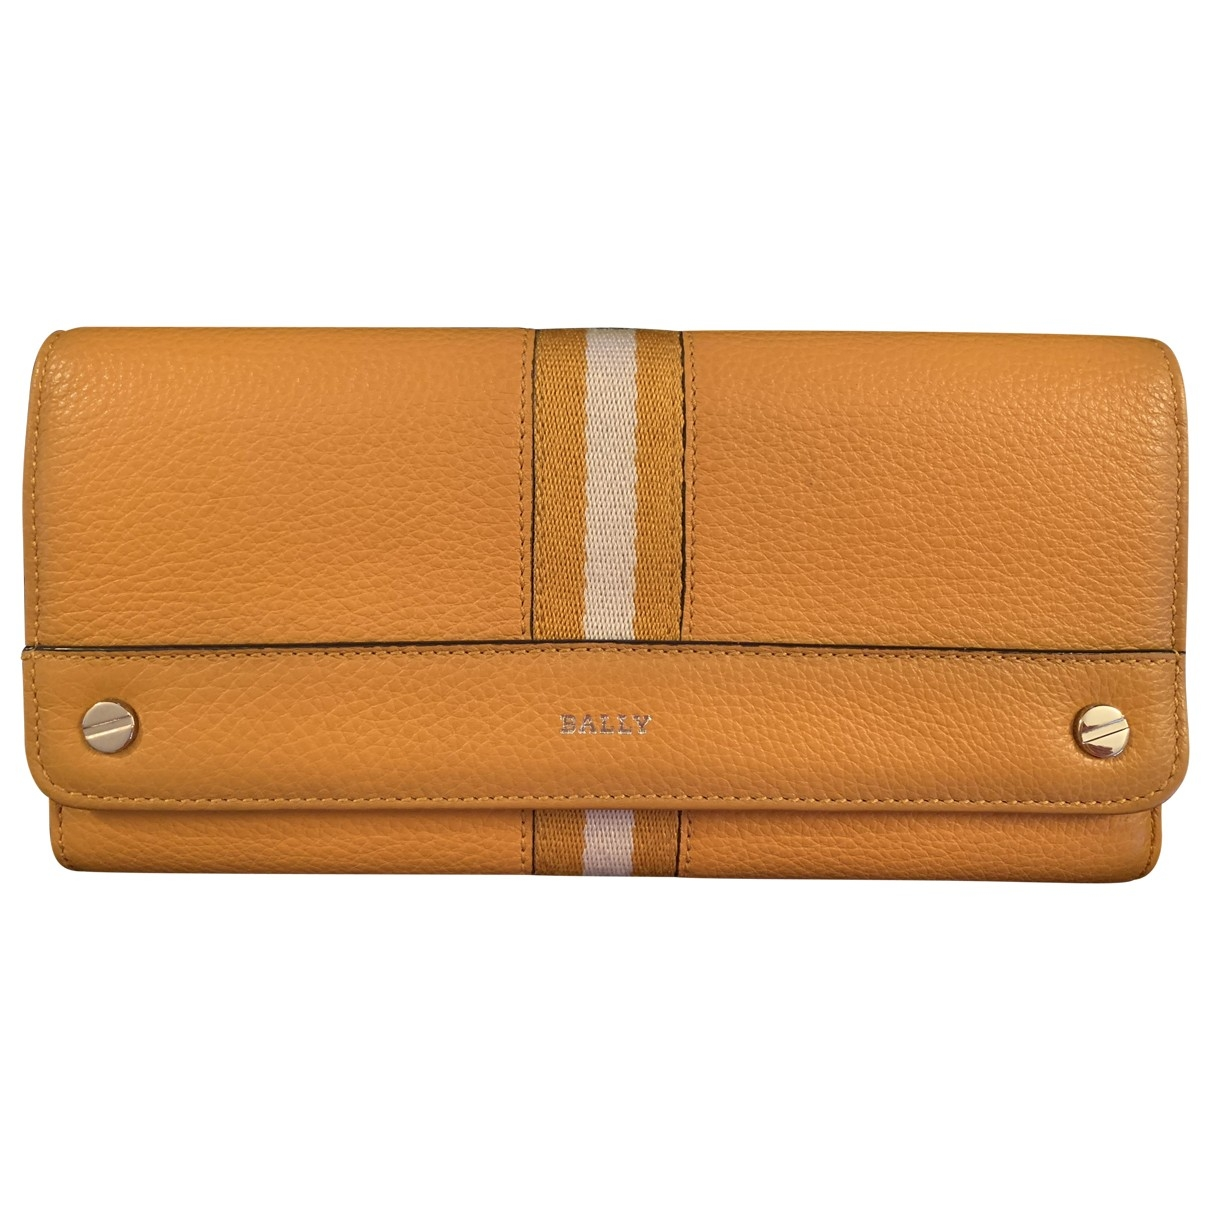 Bally \N Leather wallet for Women \N